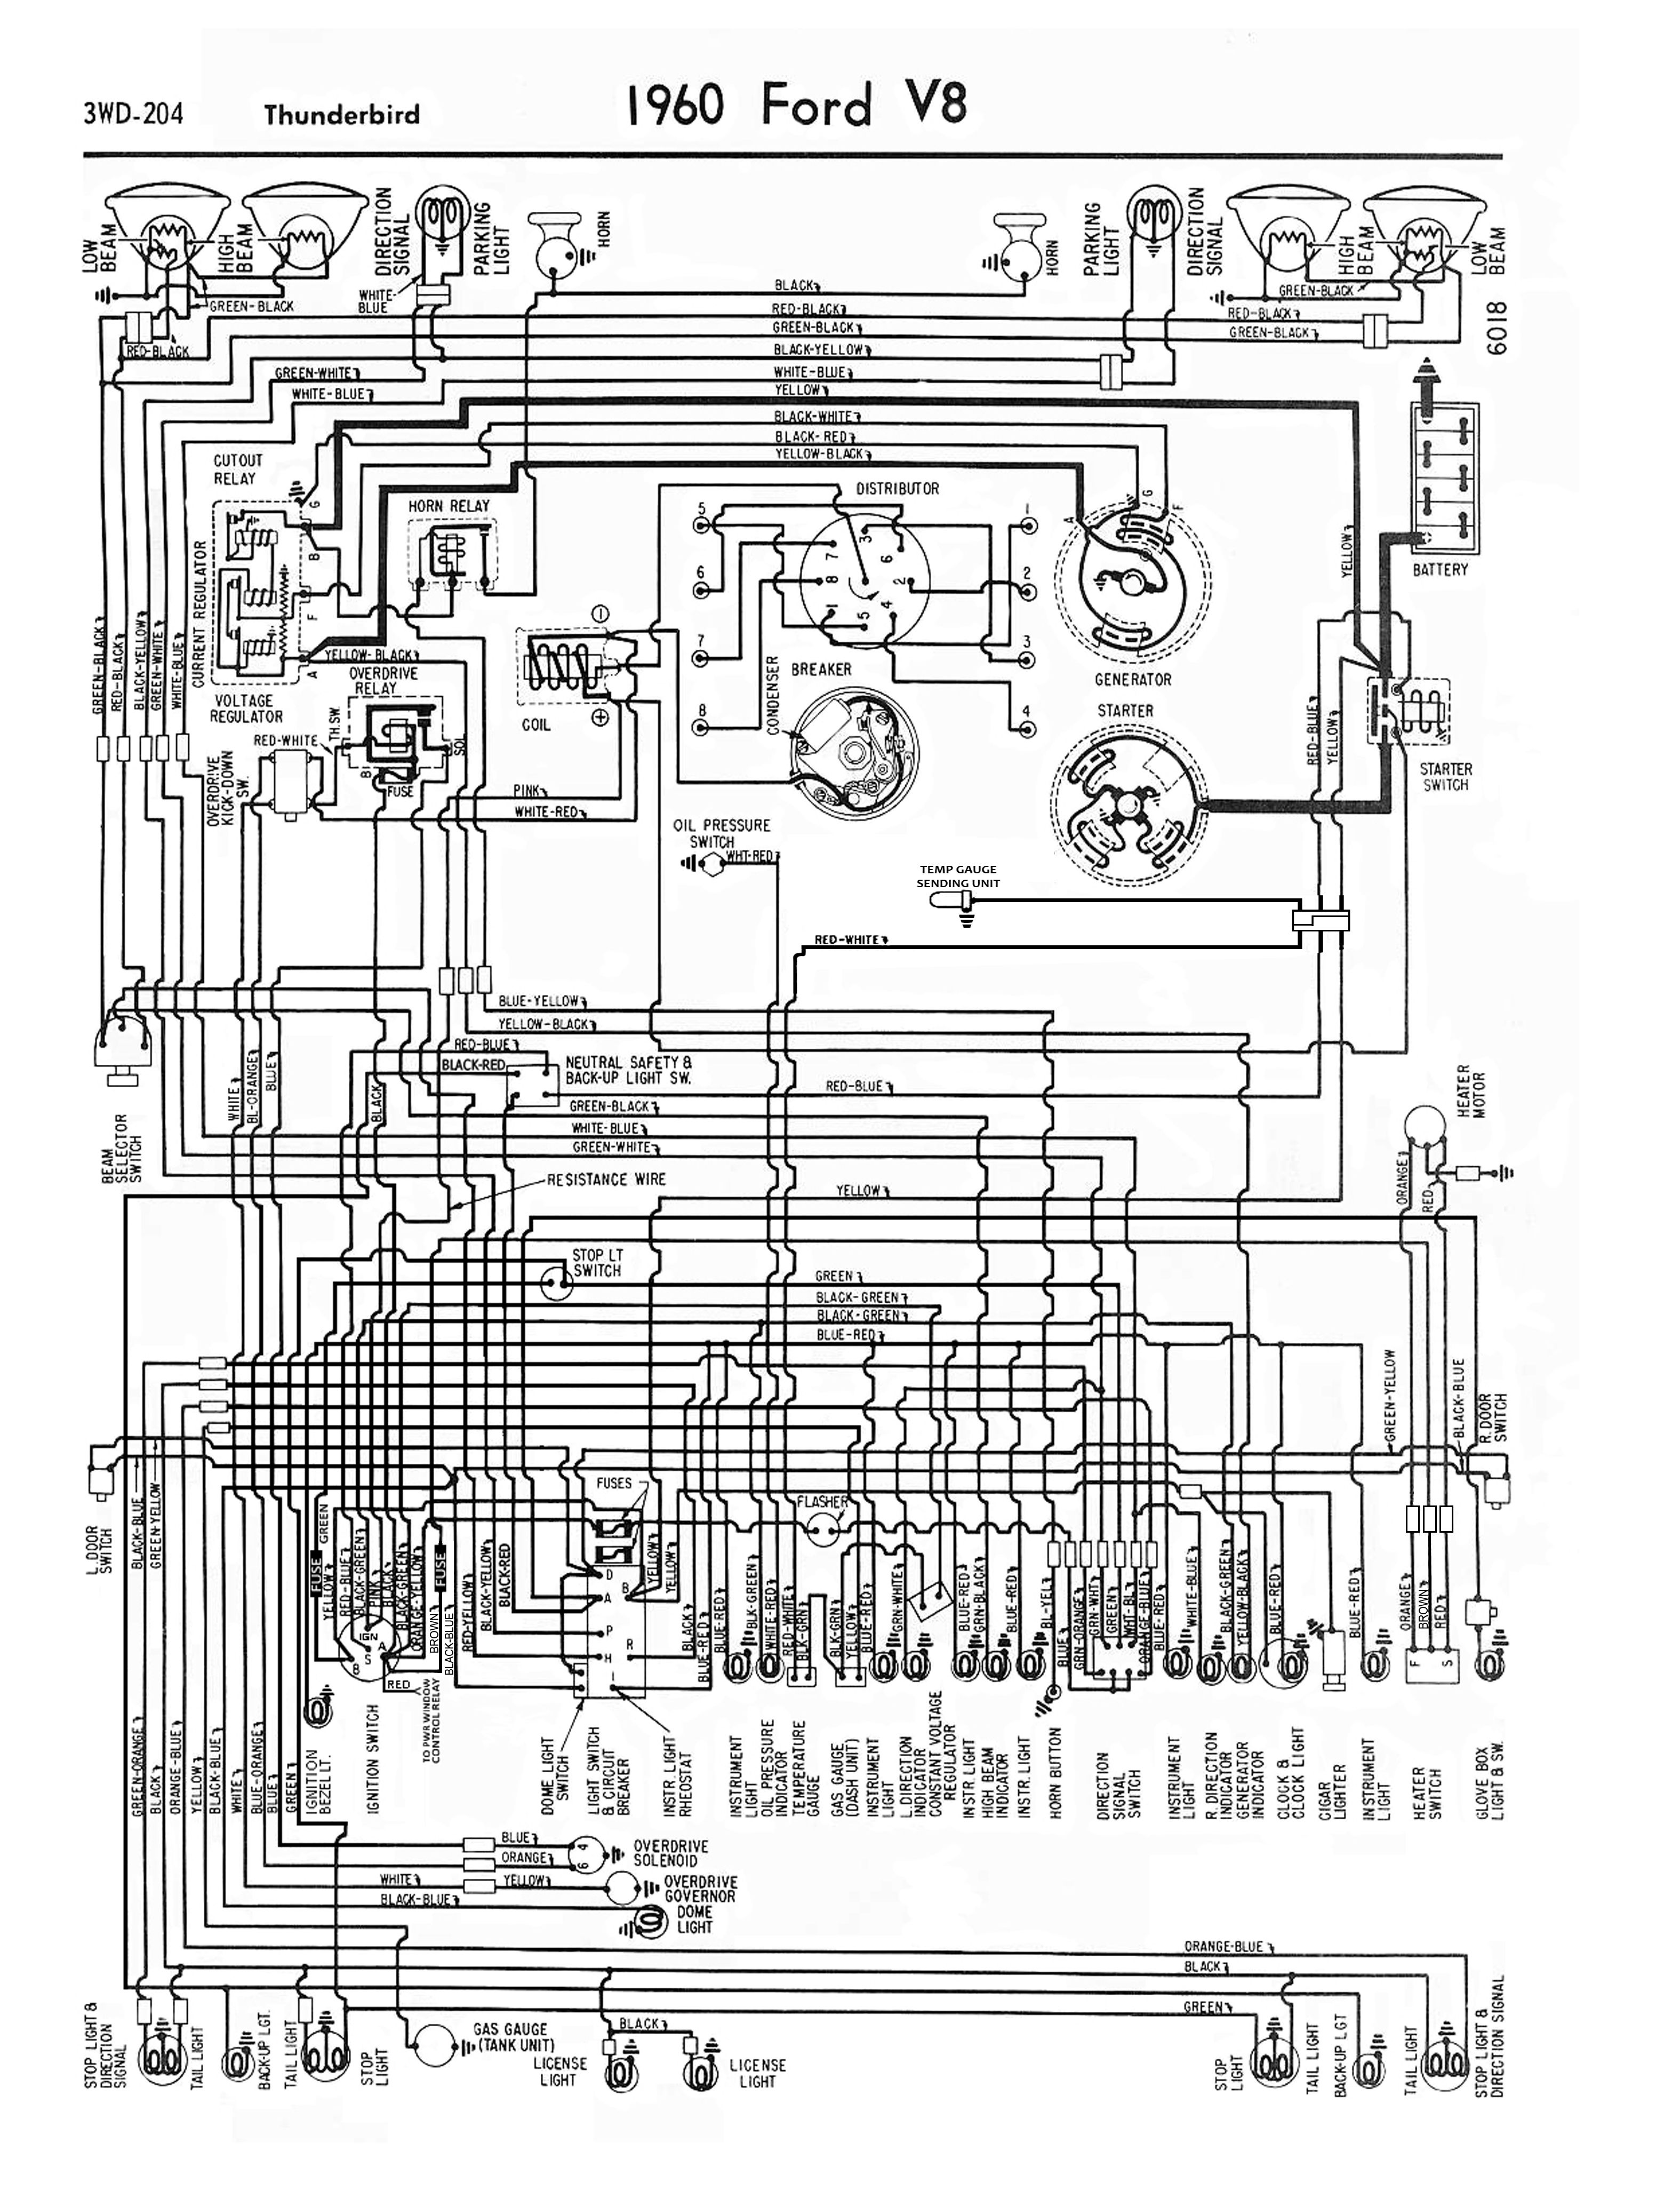 small resolution of 60 t bird wiring diagram squarebird pinterest ford ford 1960 ford f100 truck wiring diagram 1960 ford wiring diagram